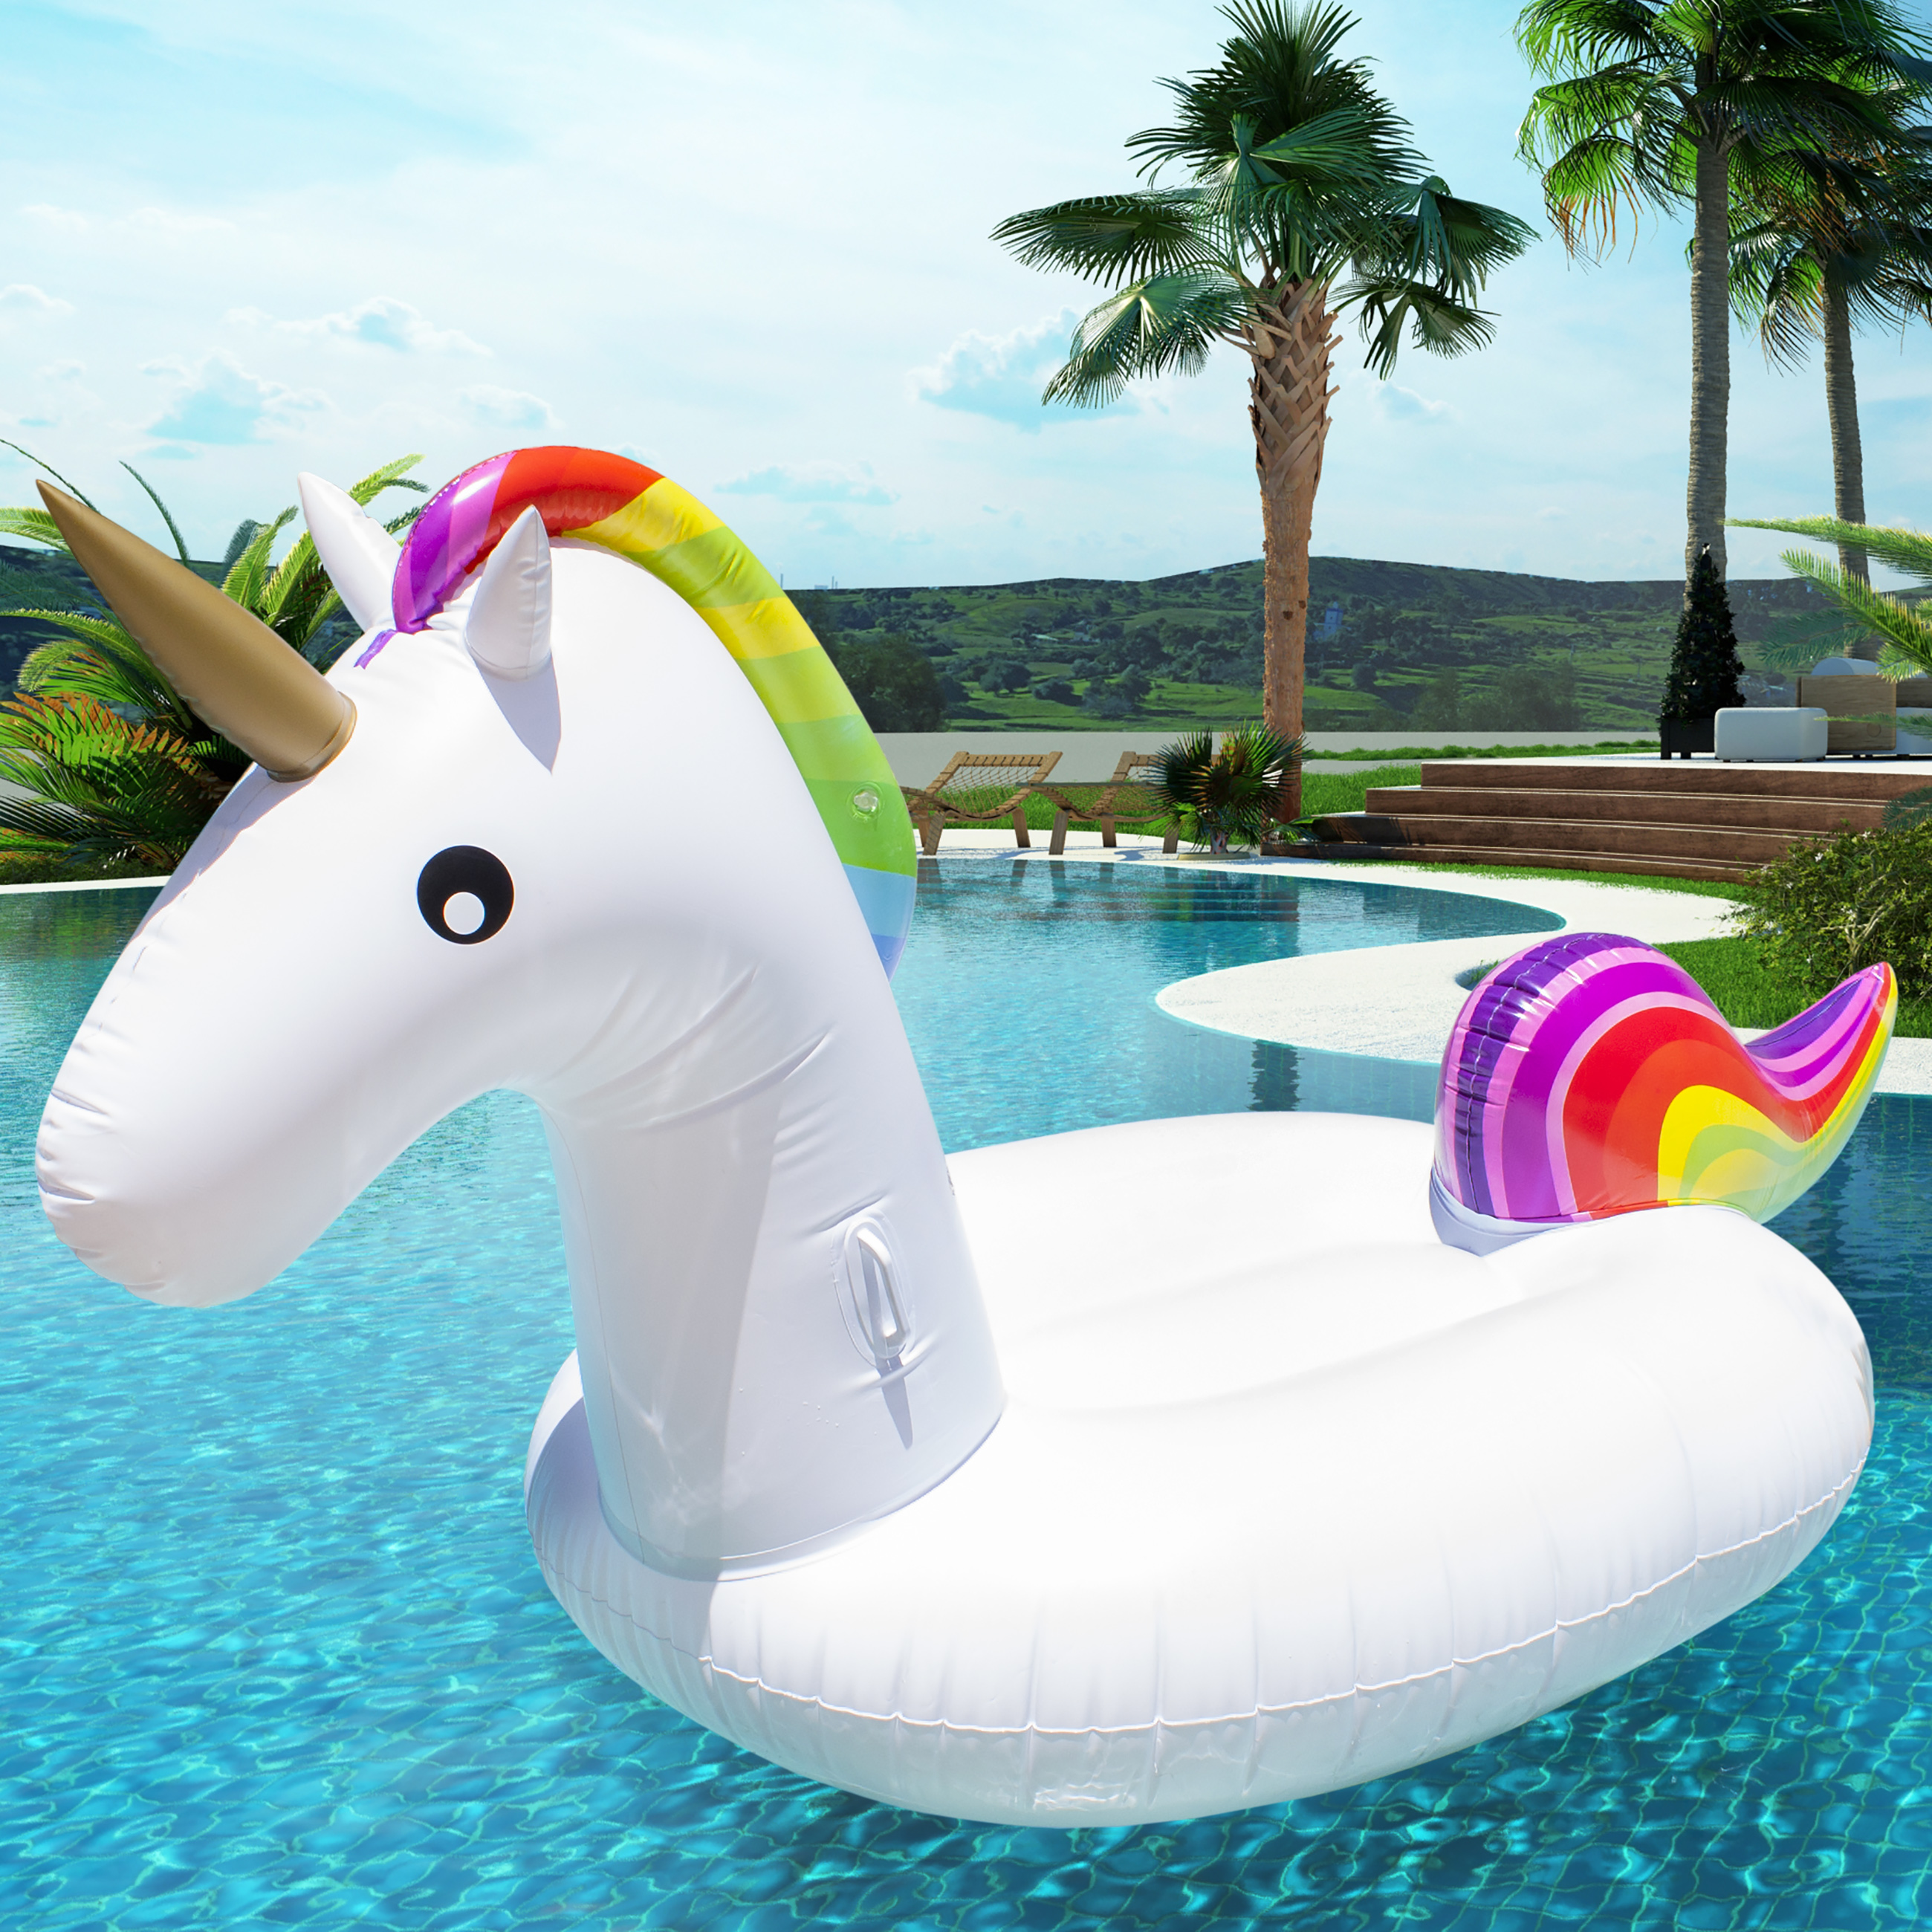 Giant Rainbow Inflatable Unicorn Pool Float Toy Outdoor Fun Water Swim  Floater   Walmart.com